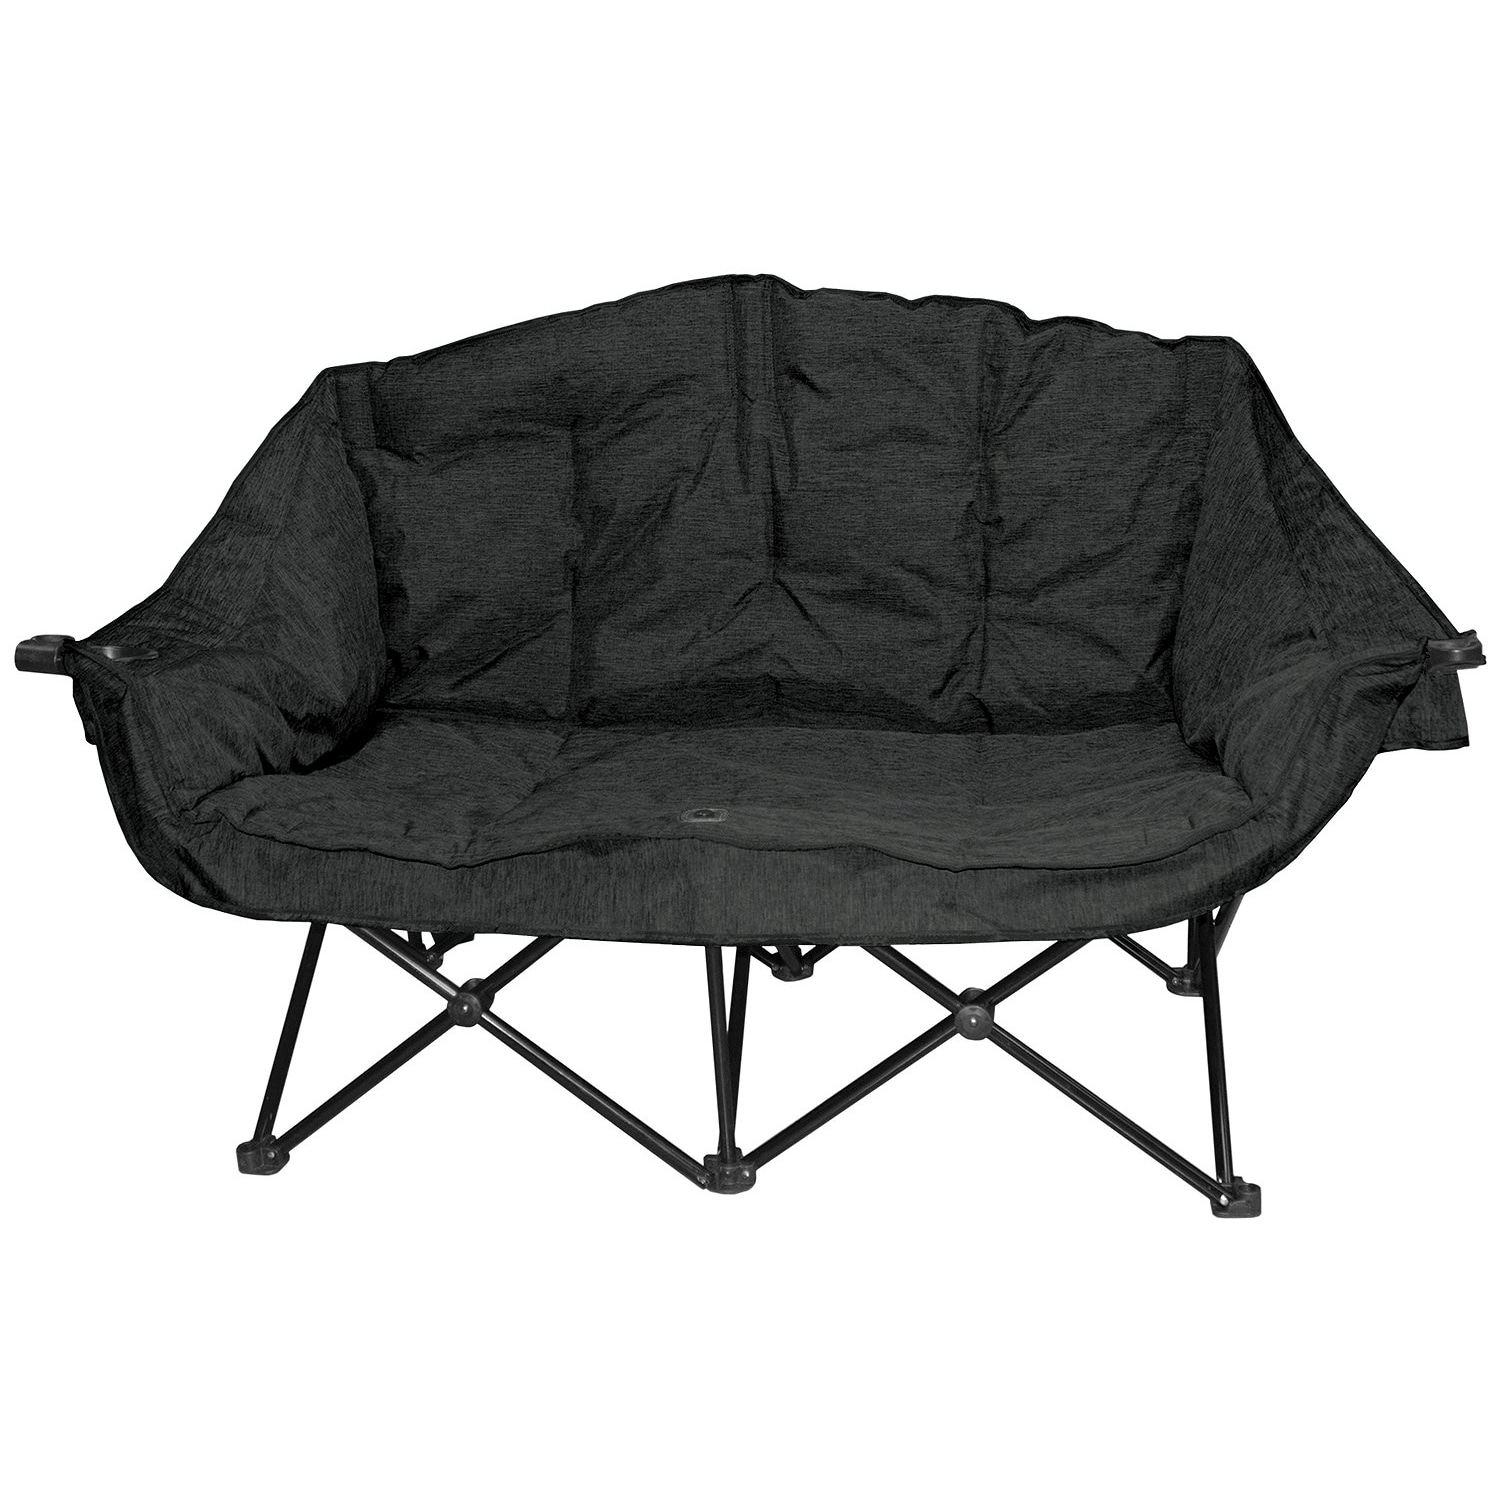 Bear Buddy Double Chair Black